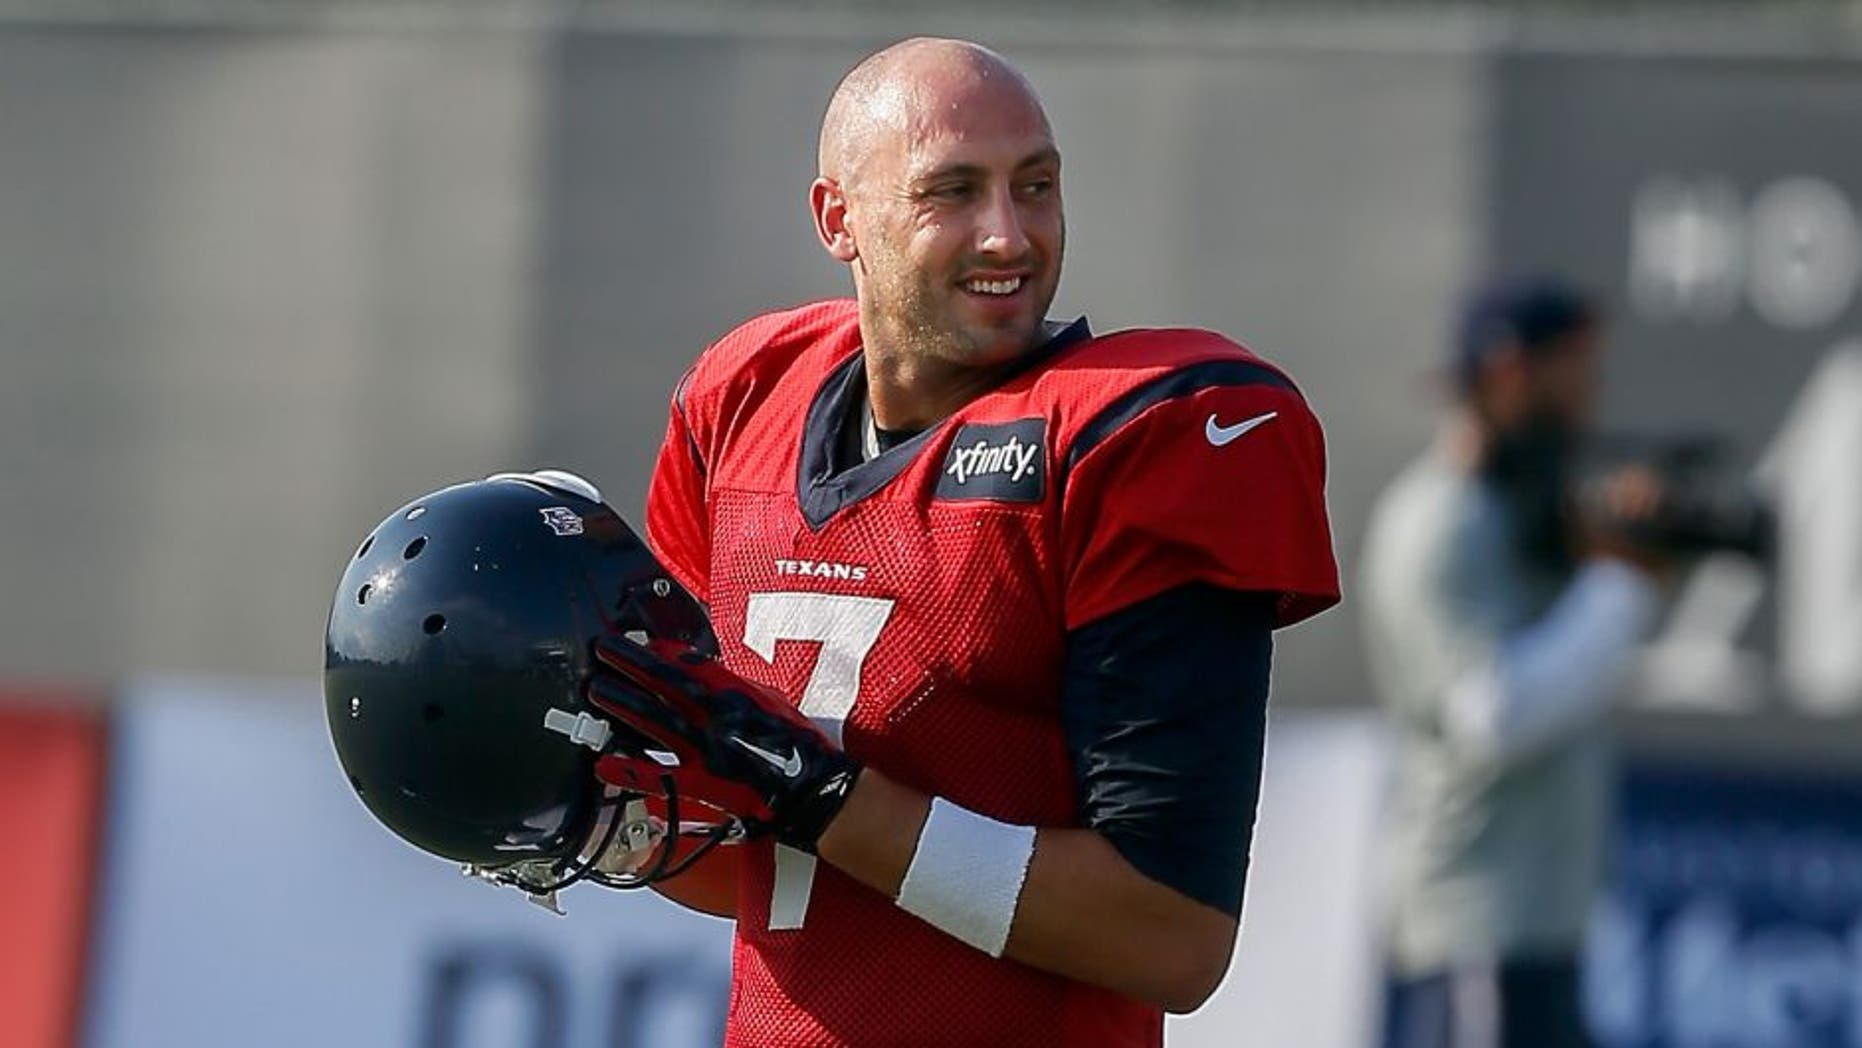 Houston Texans quarterback Brian Hoyer (7) takes the field during an NFL football training camp at the Methodist Training Center on Monday, Aug. 3, 2015 in Houston. (AP Photo/Bob Levey)